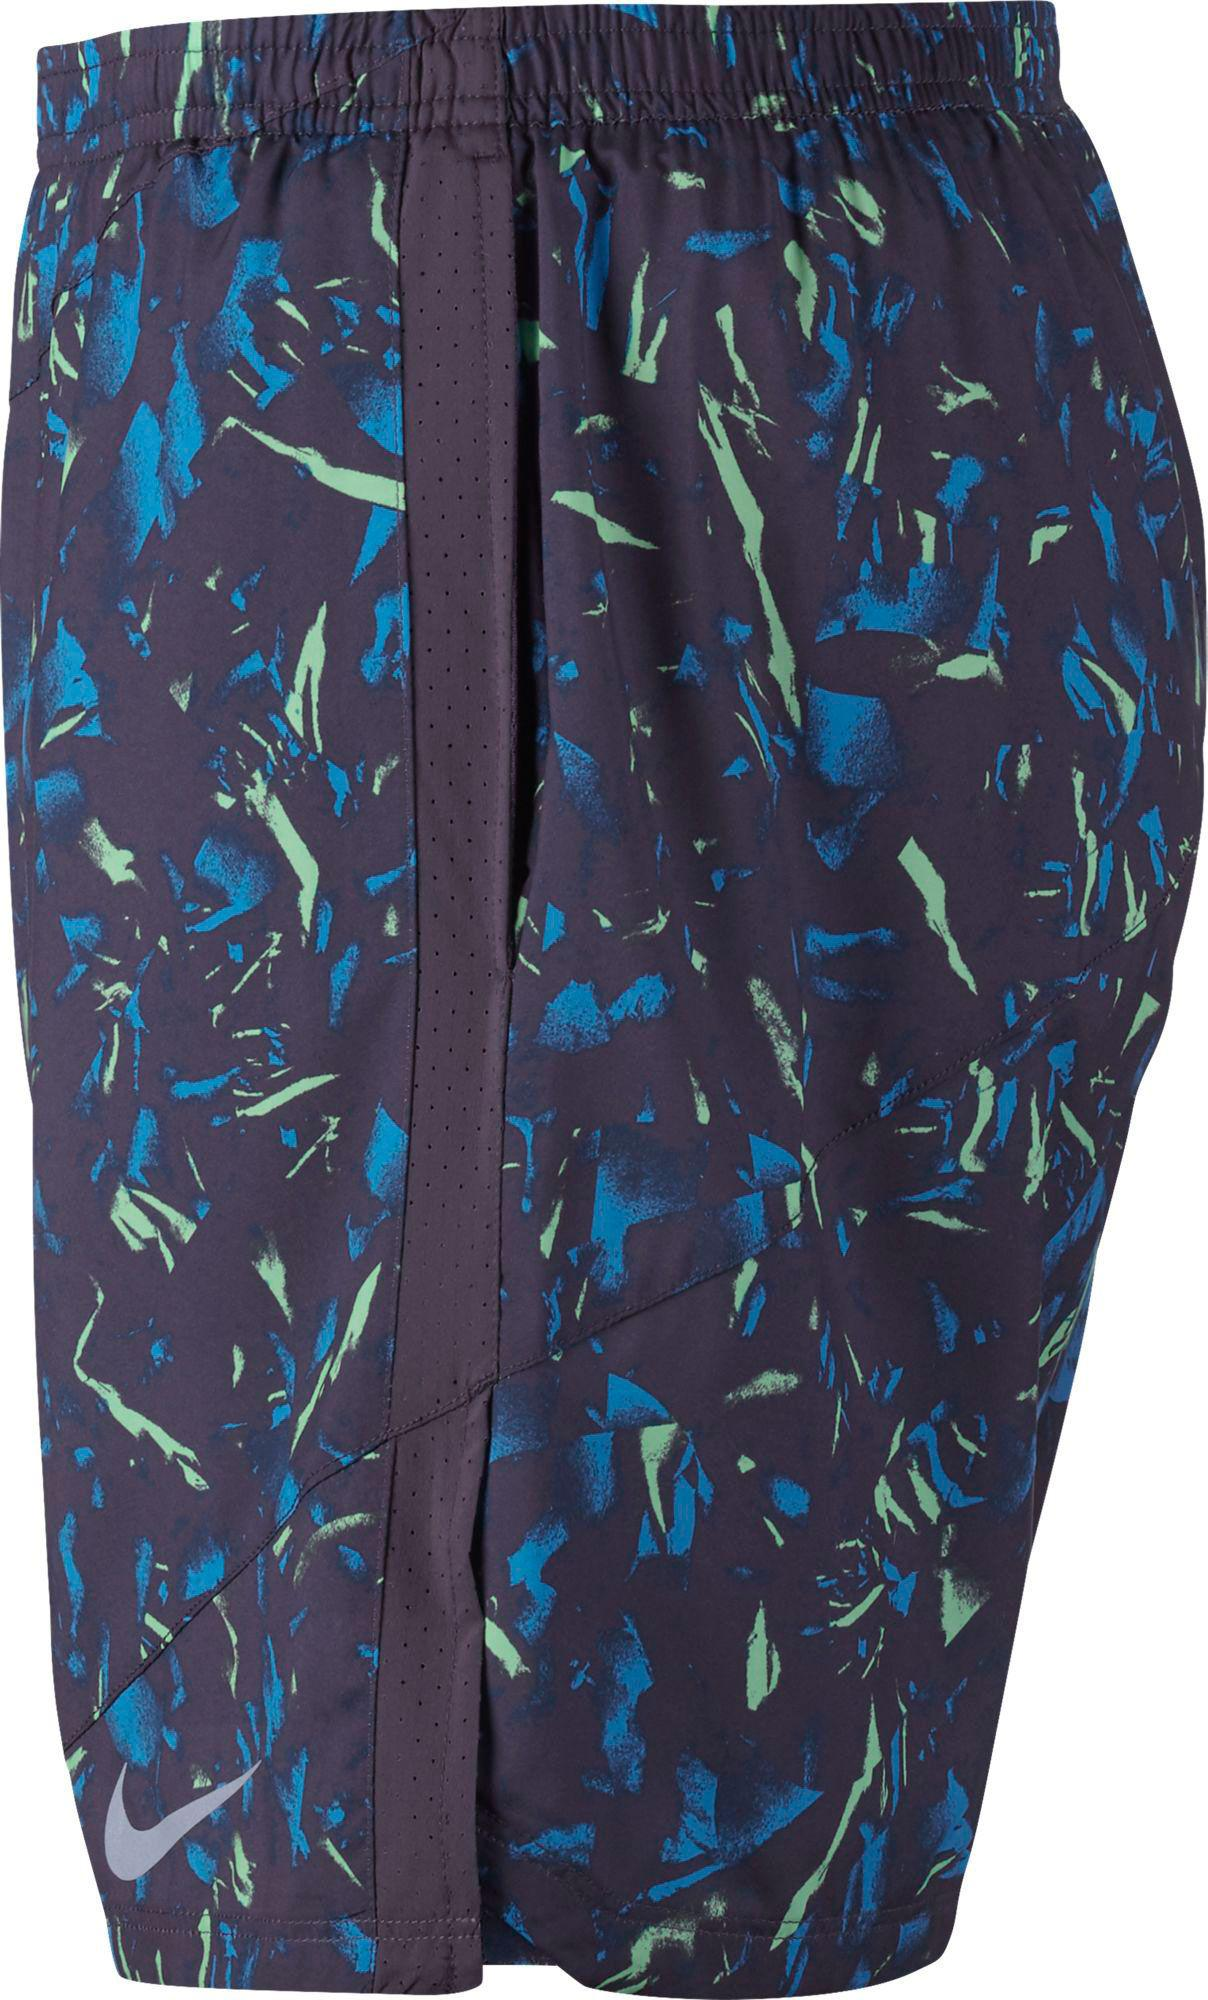 c0a2402bcf41 Nike 7'' Flex Distance Printed Running Shorts in Blue for Men - Lyst